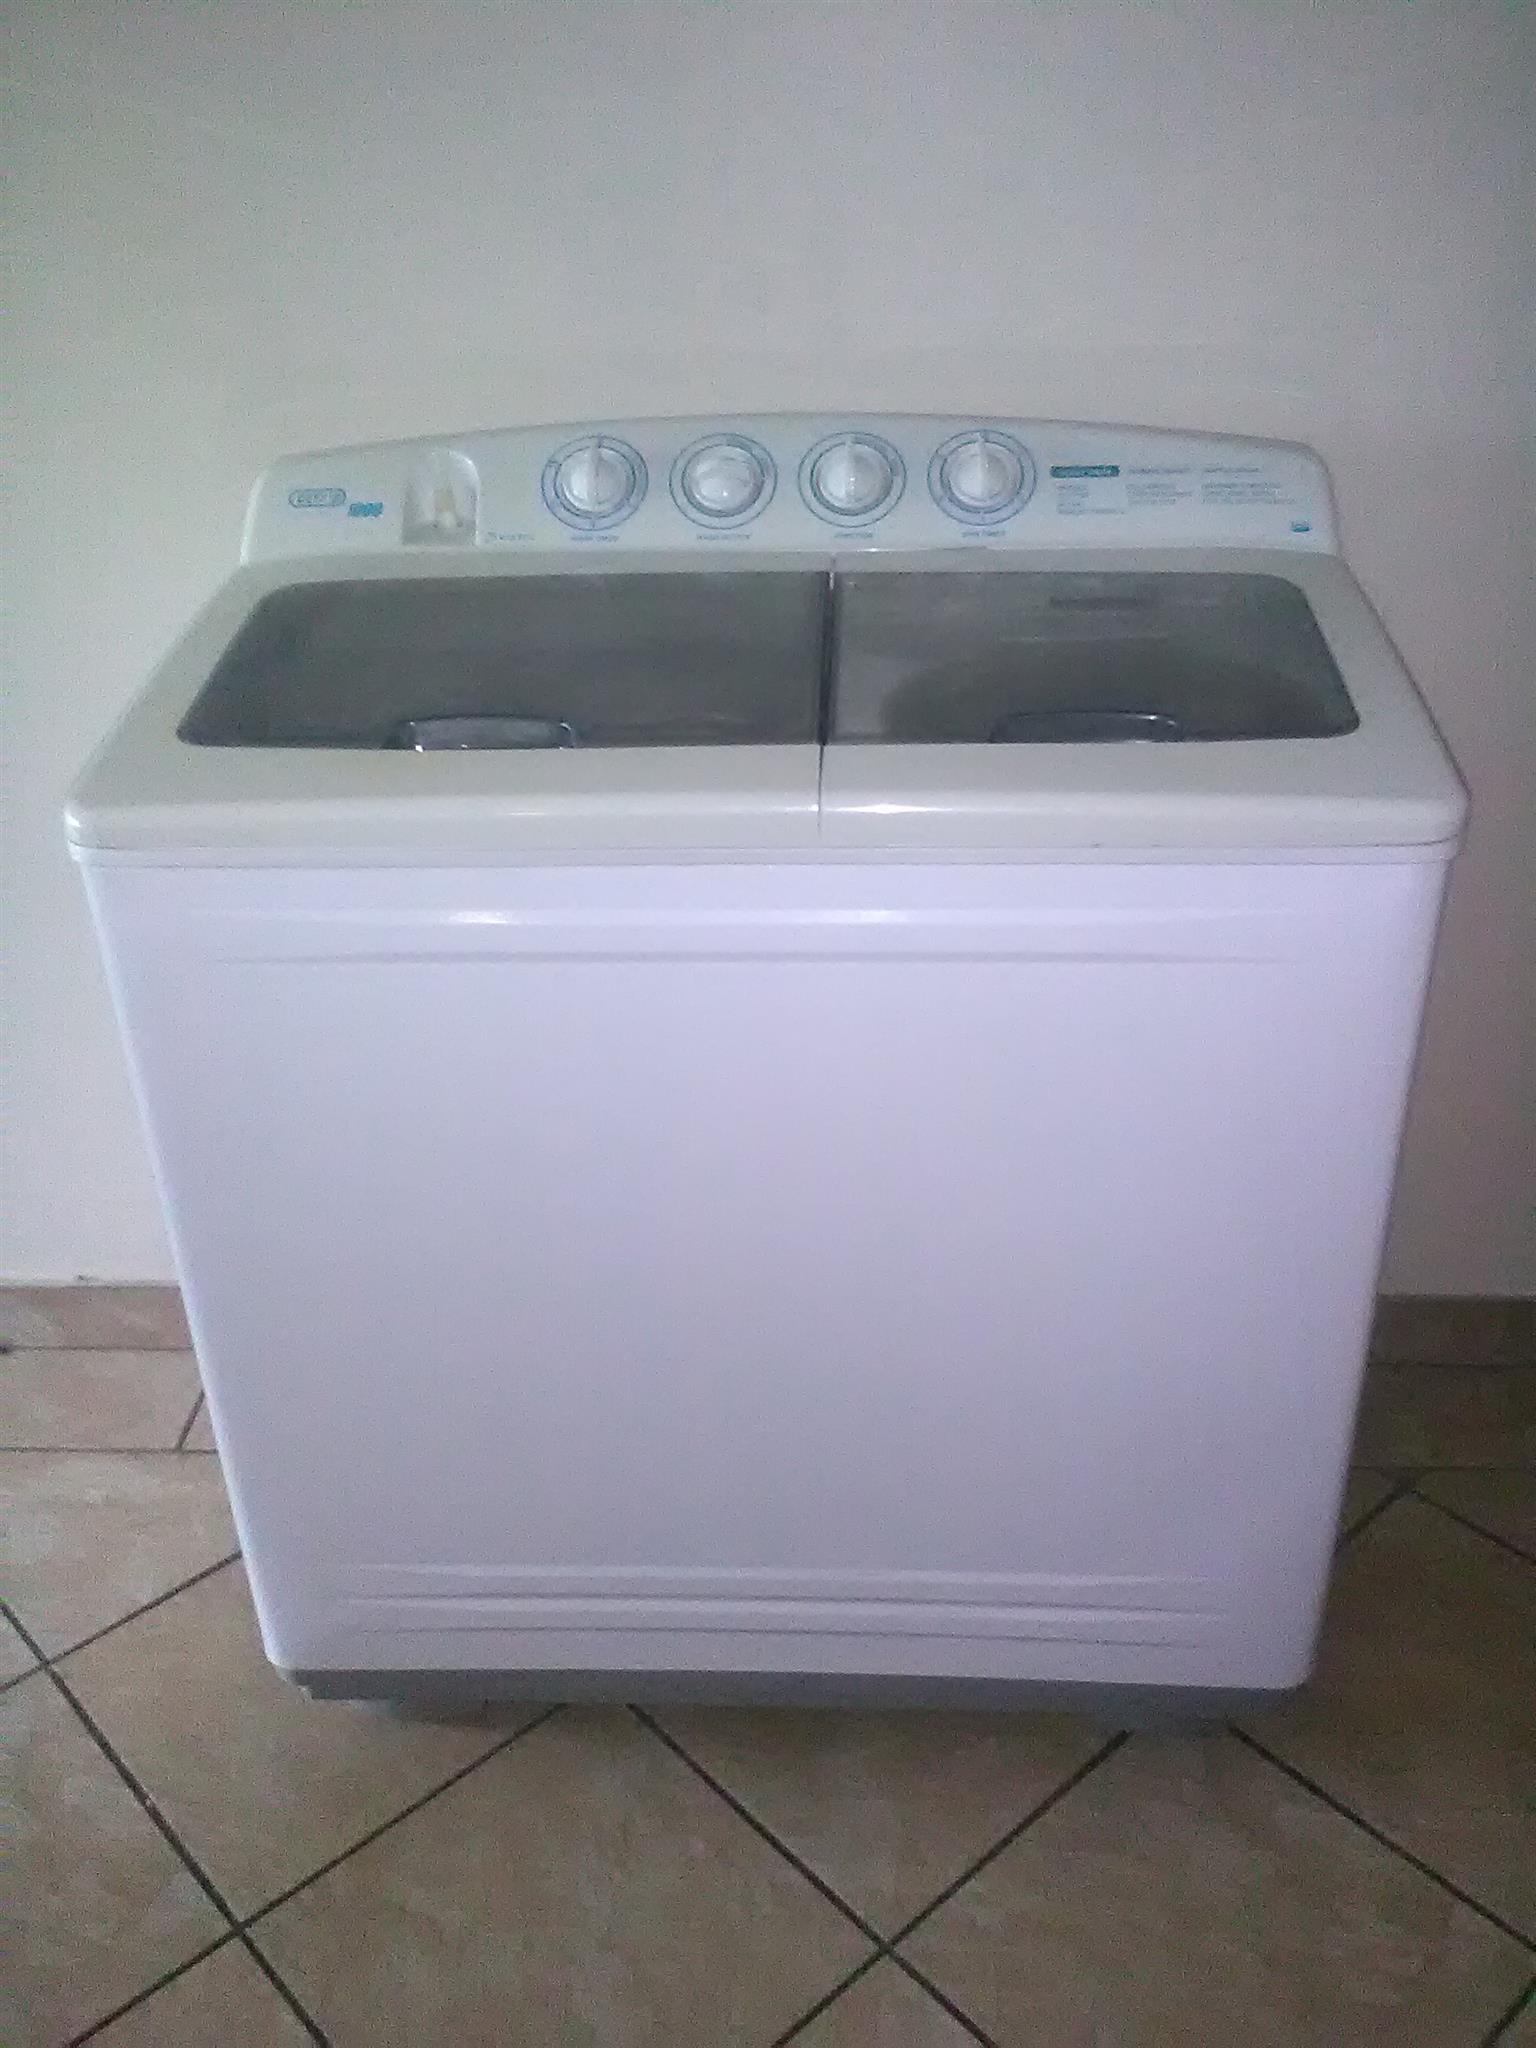 Defy Twinmaid 1000 twin tub washing machine in very good condition. Works perfectly.